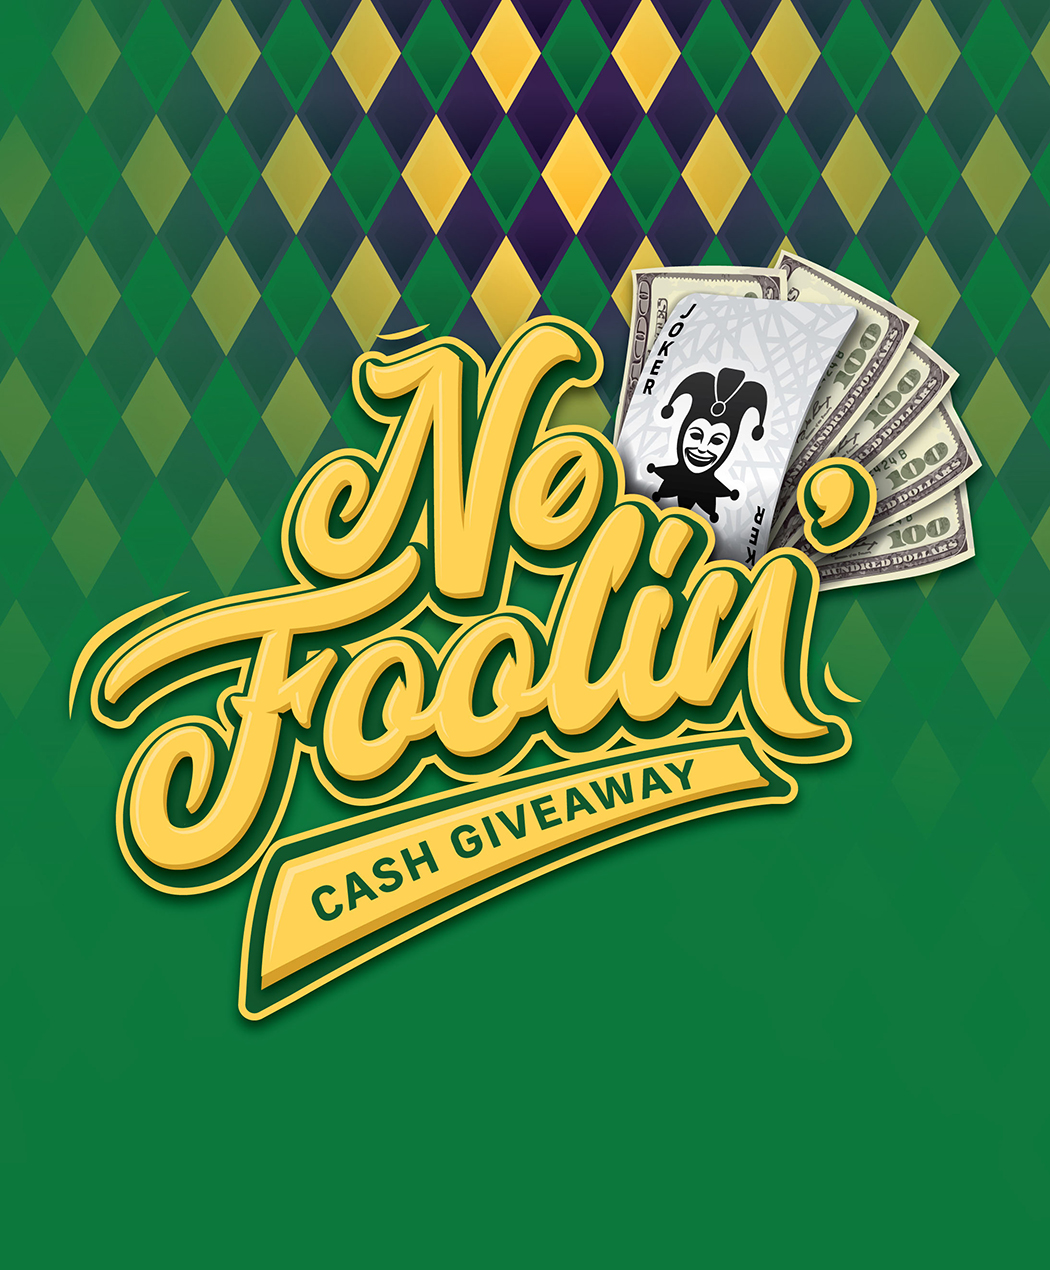 No Foolin' Cash Giveaway